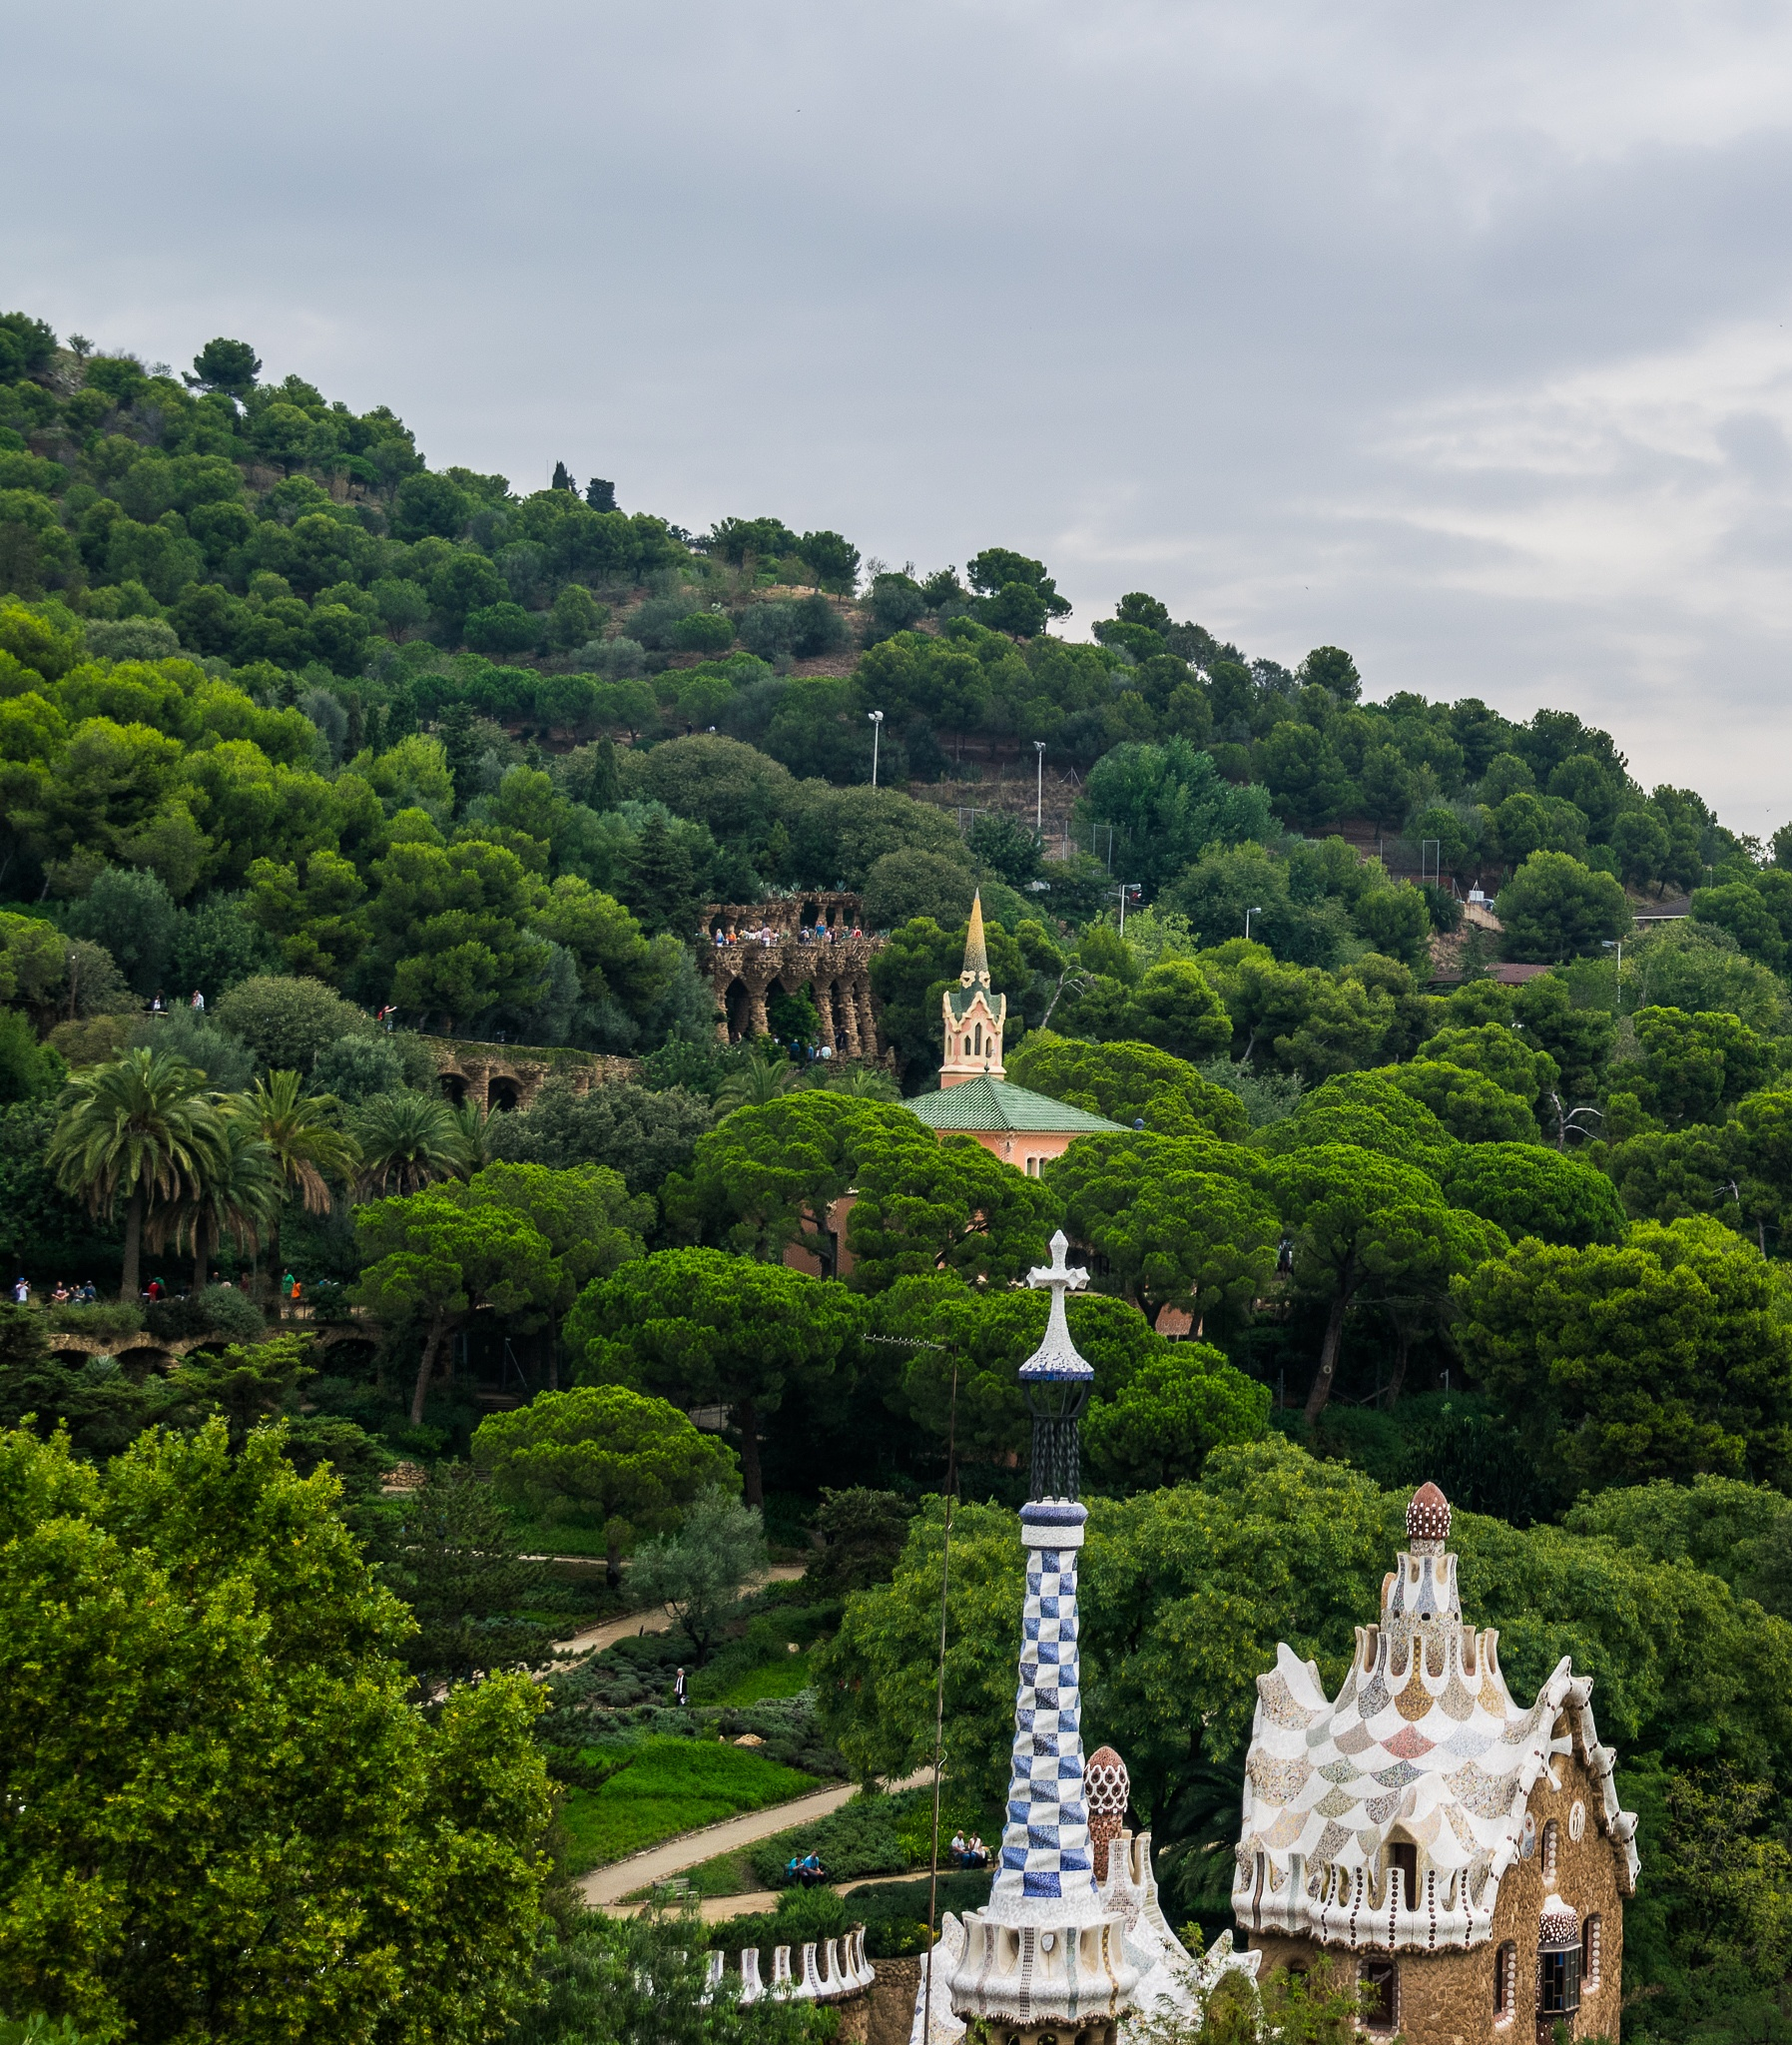 Park Guell from another perspective by Ilia Lotosh